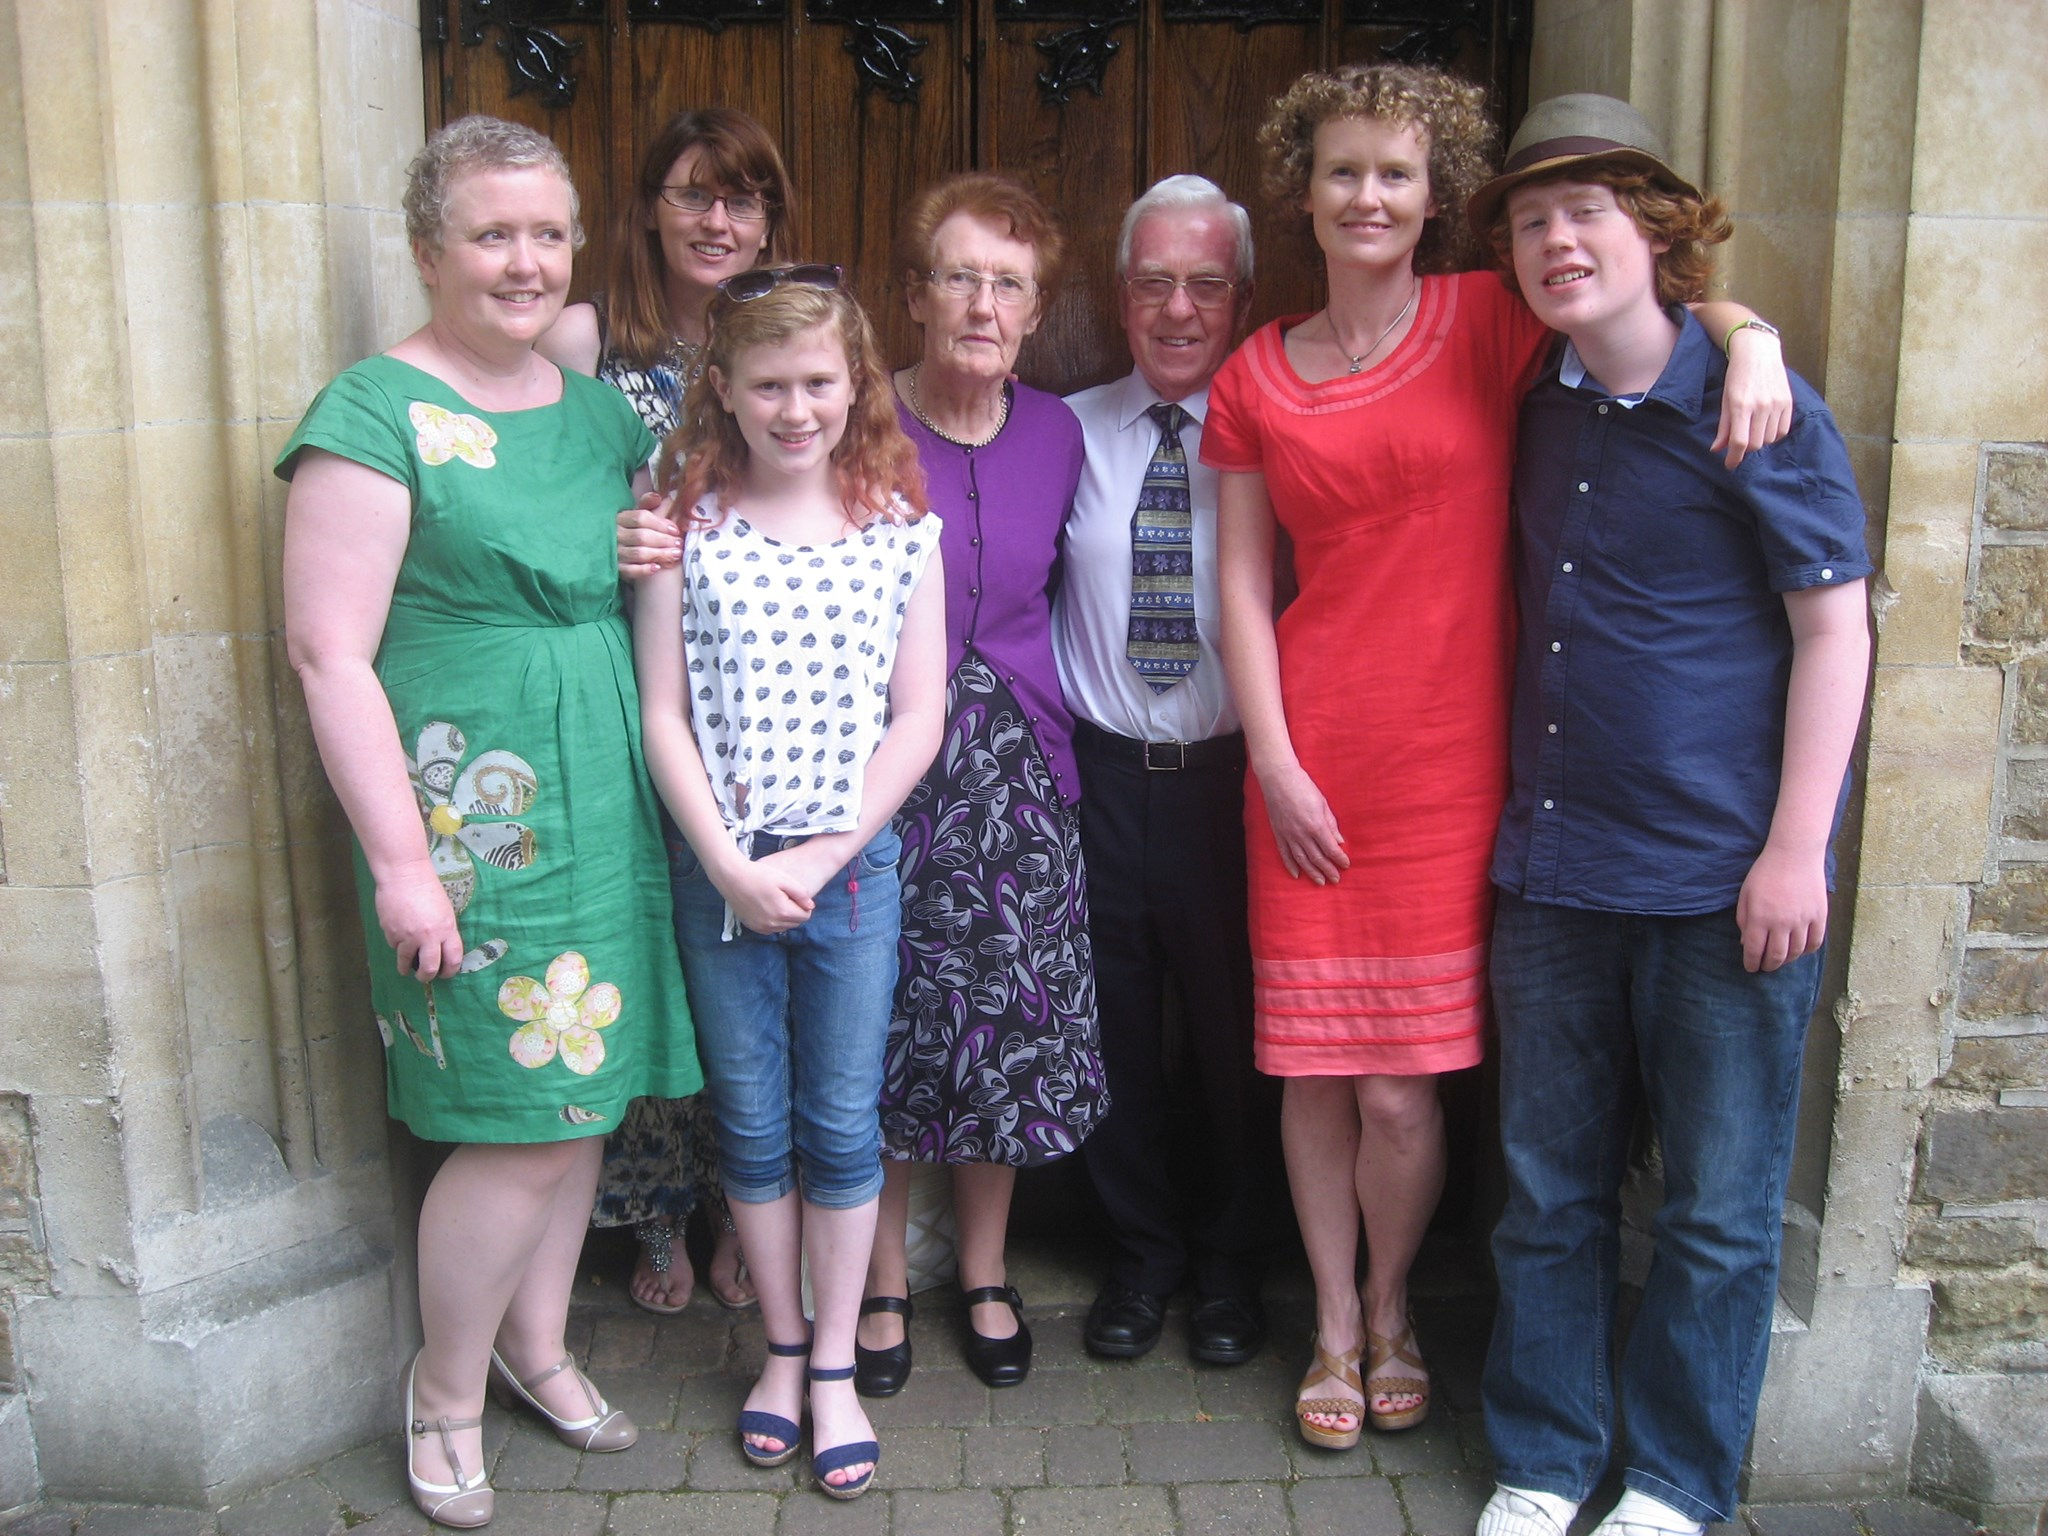 Mum + Dad's 50th wedding annversary, Aug 2014